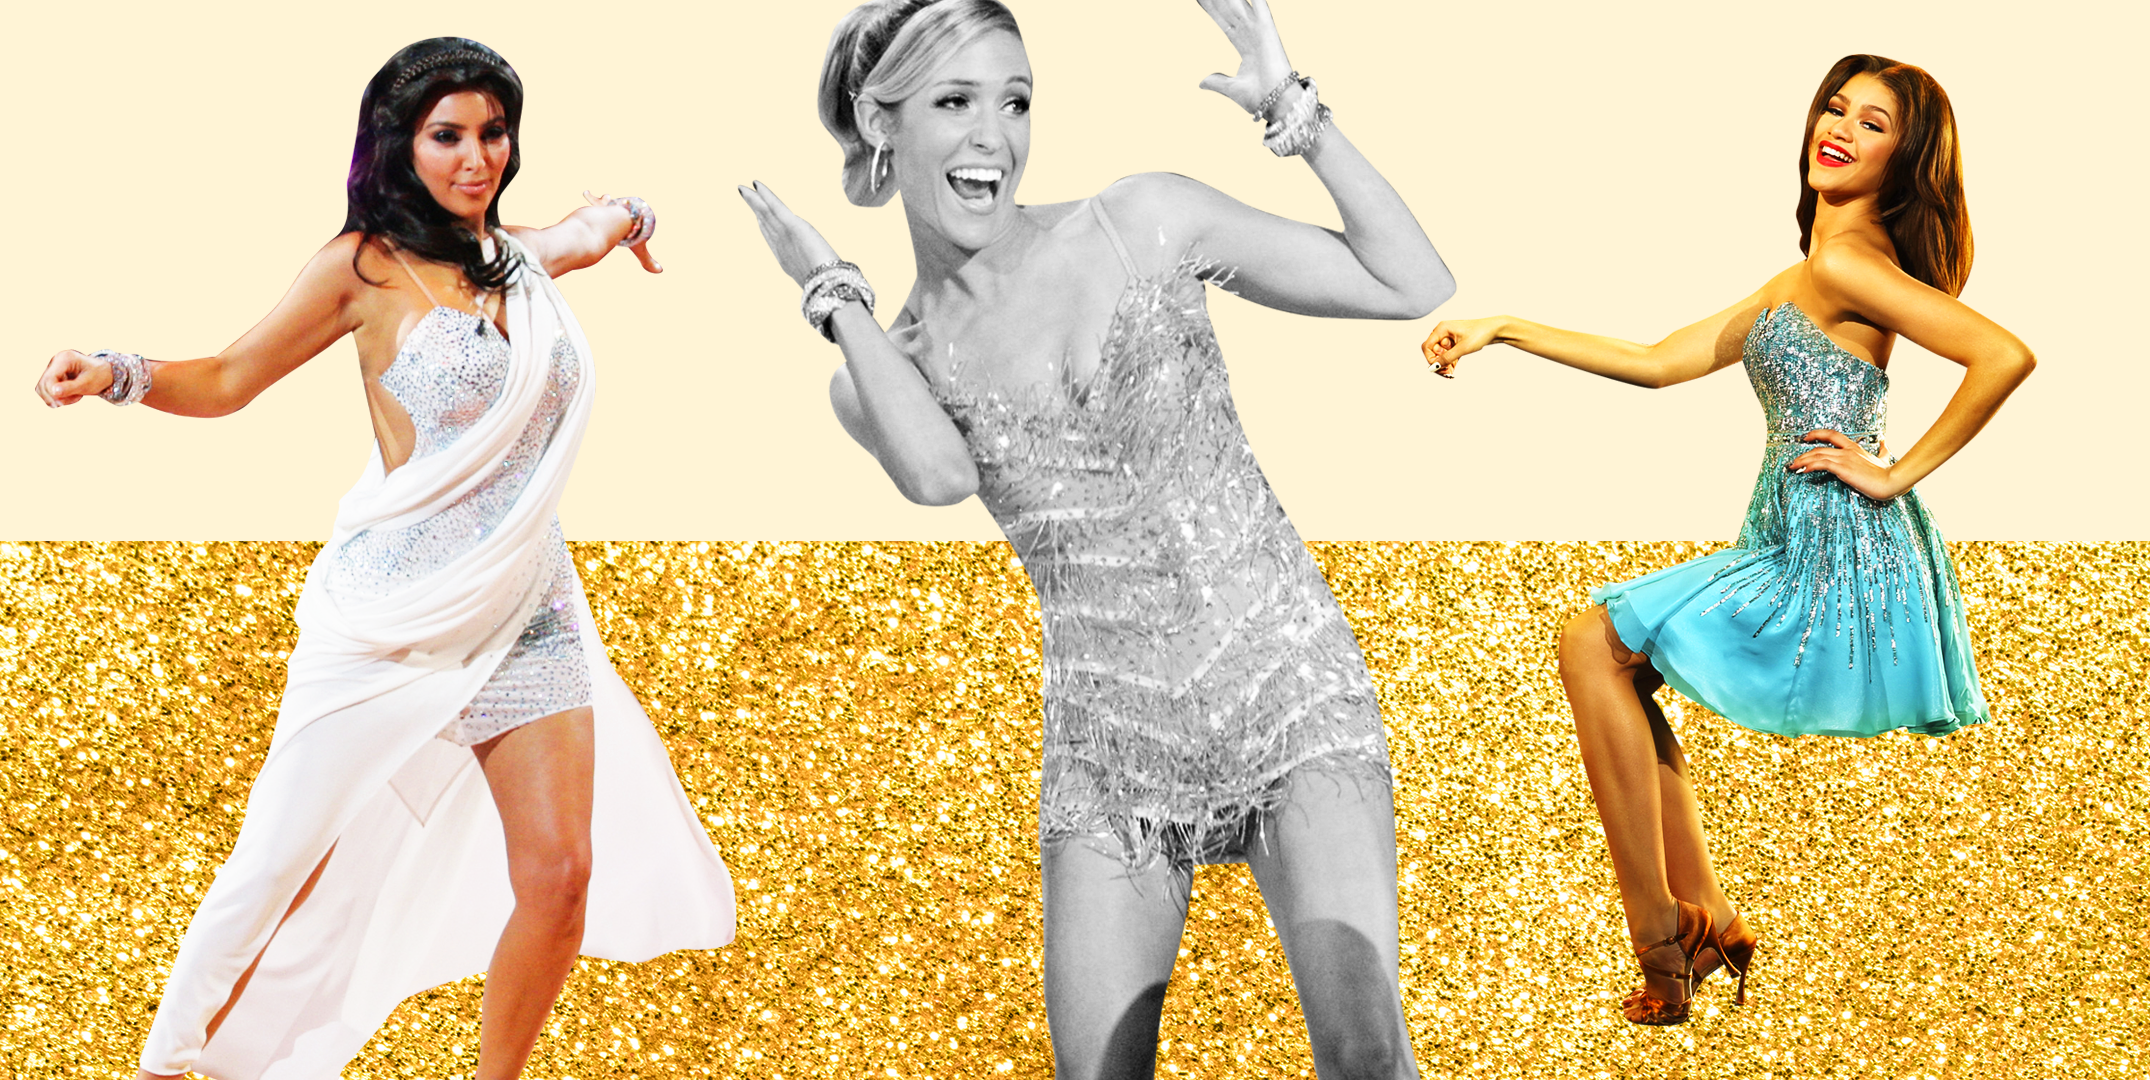 50 Celebrities You Definitely Forgot Were on 'Dancing with the Stars'